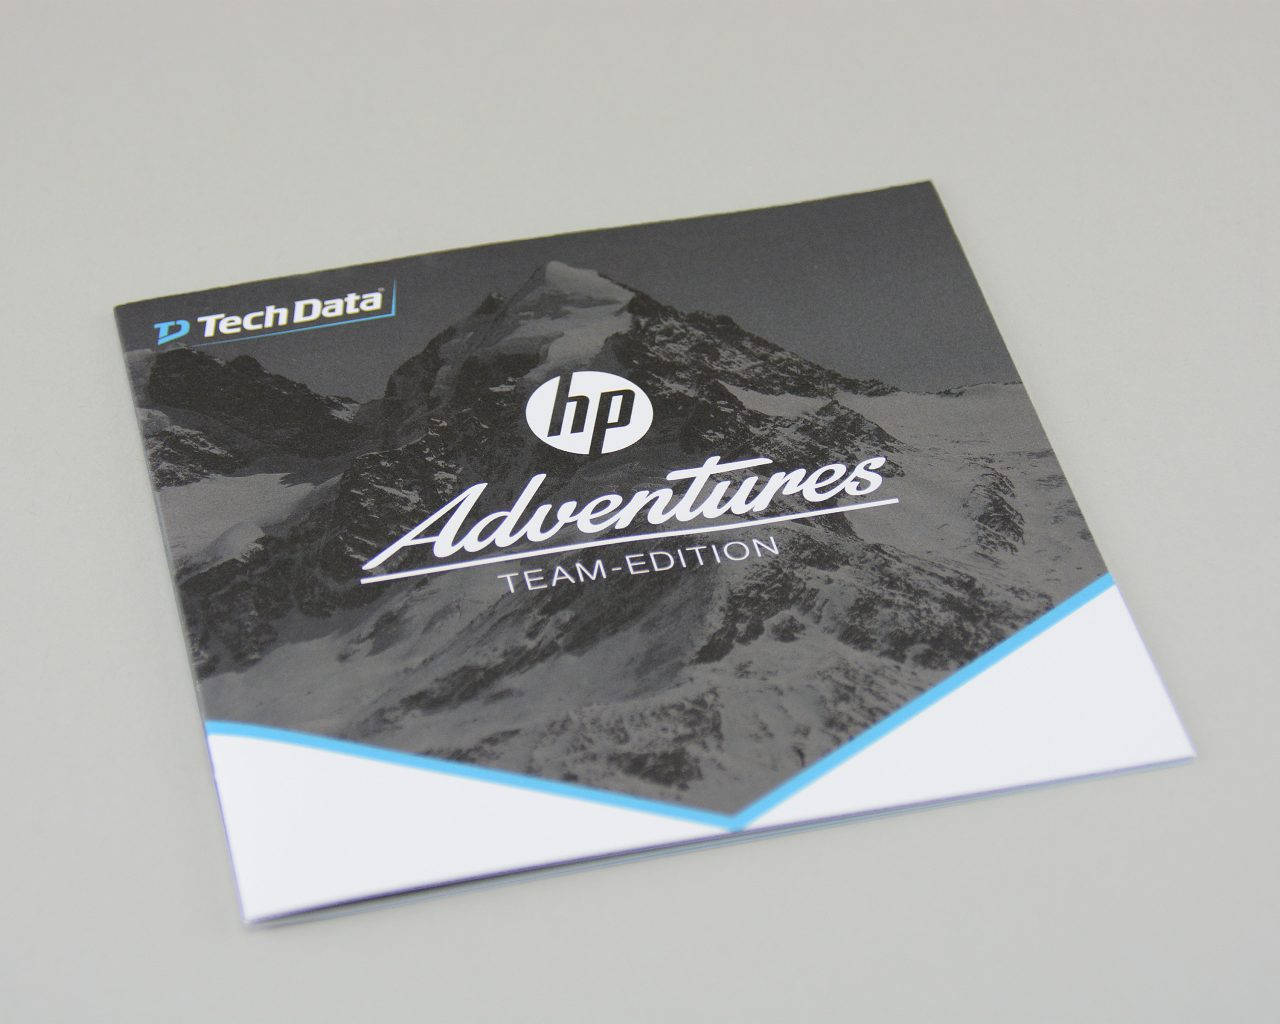 AGENTMEDIA_Techdata_HP_Adventures